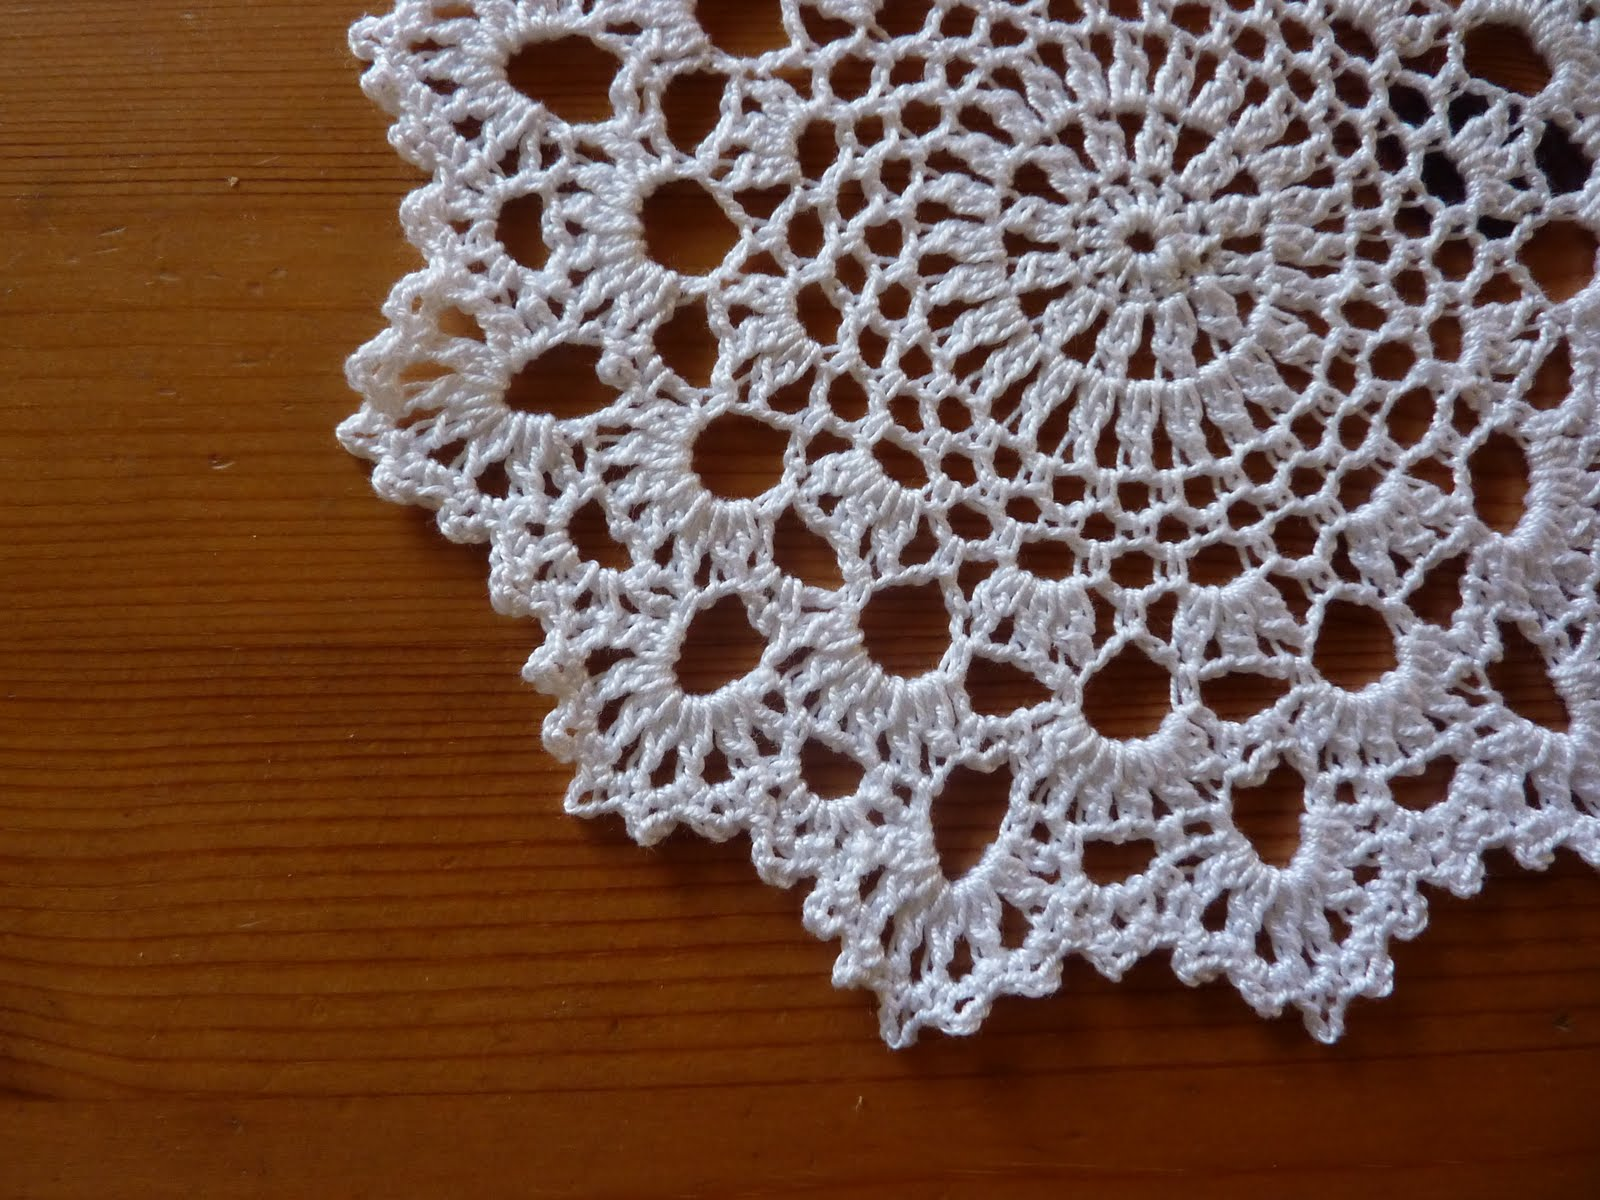 Free Crochet Patterns For Doilies For Beginners : Free Beginner Crochet Doily Patterns myideasbedroom.com